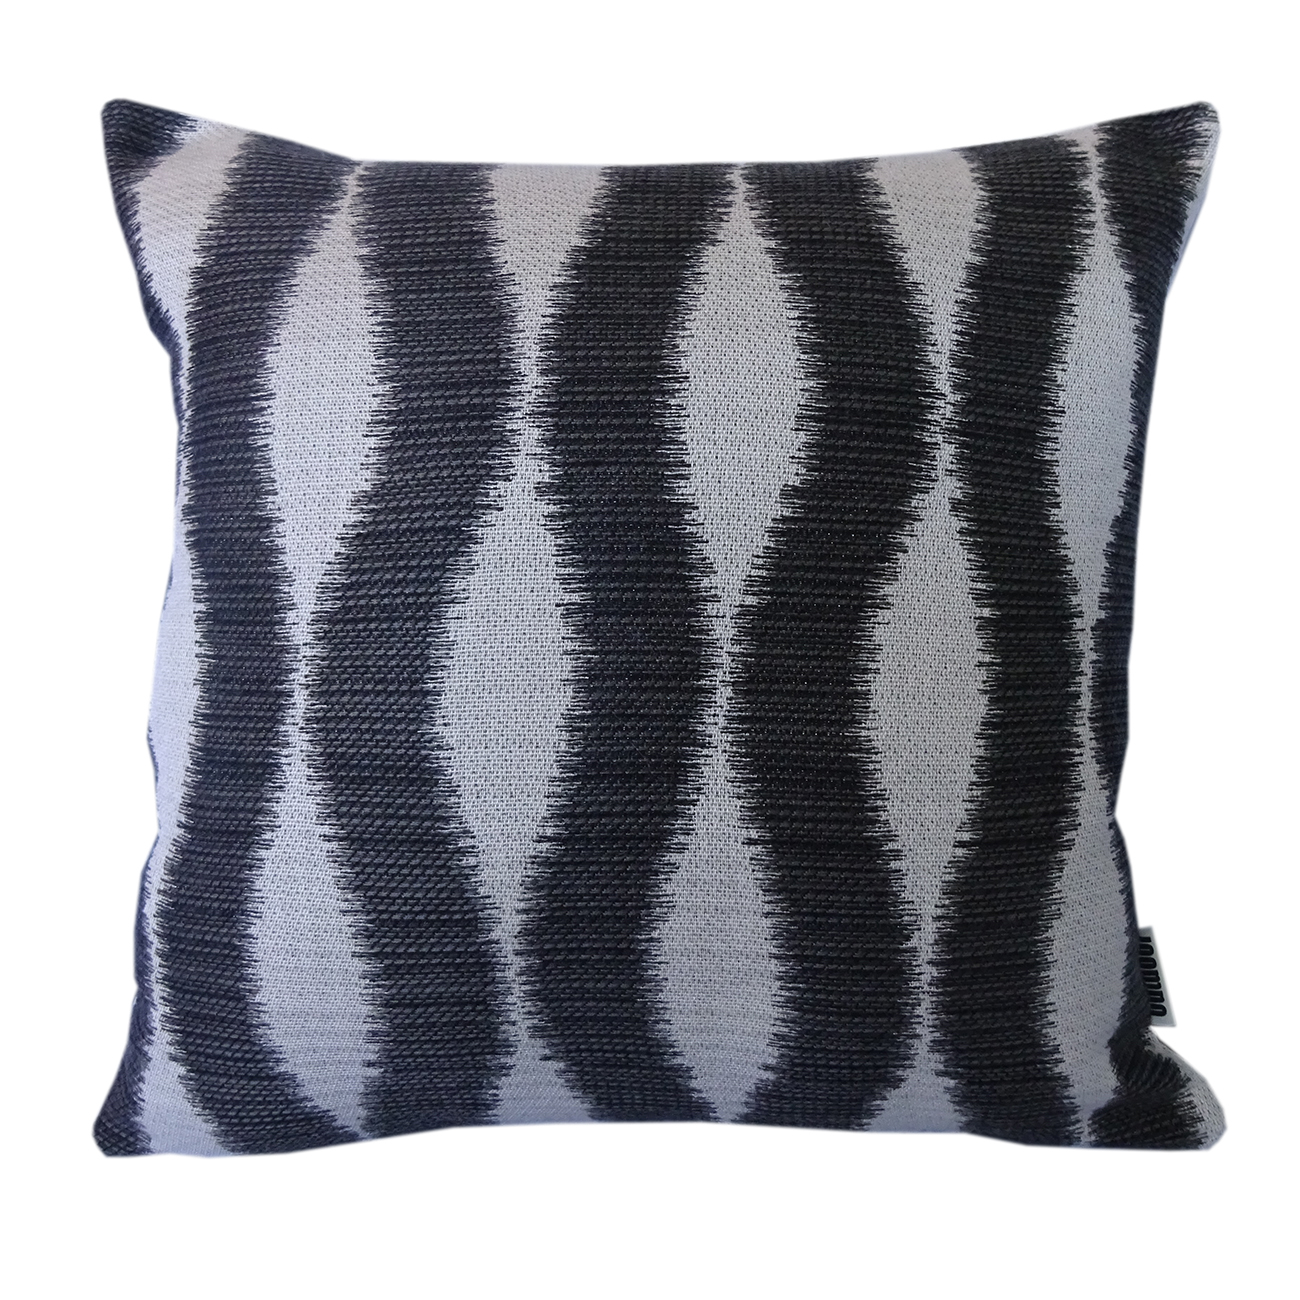 Bora Bora Black Outdoor Interiors Outdoor Cushions